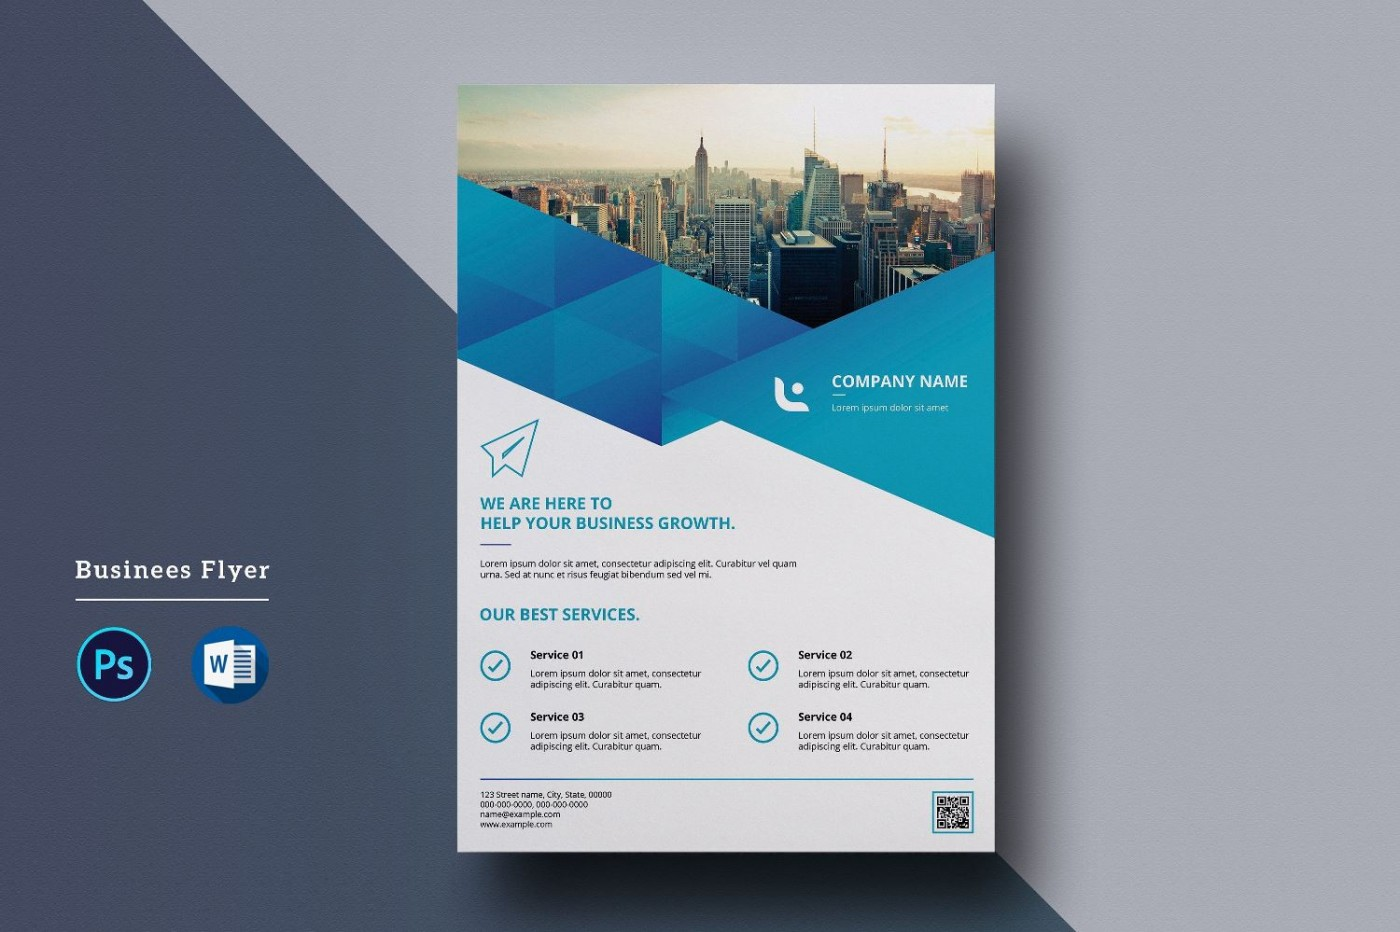 000 Shocking Free Flyer Design Template  Indesign For Word Microsoft1400